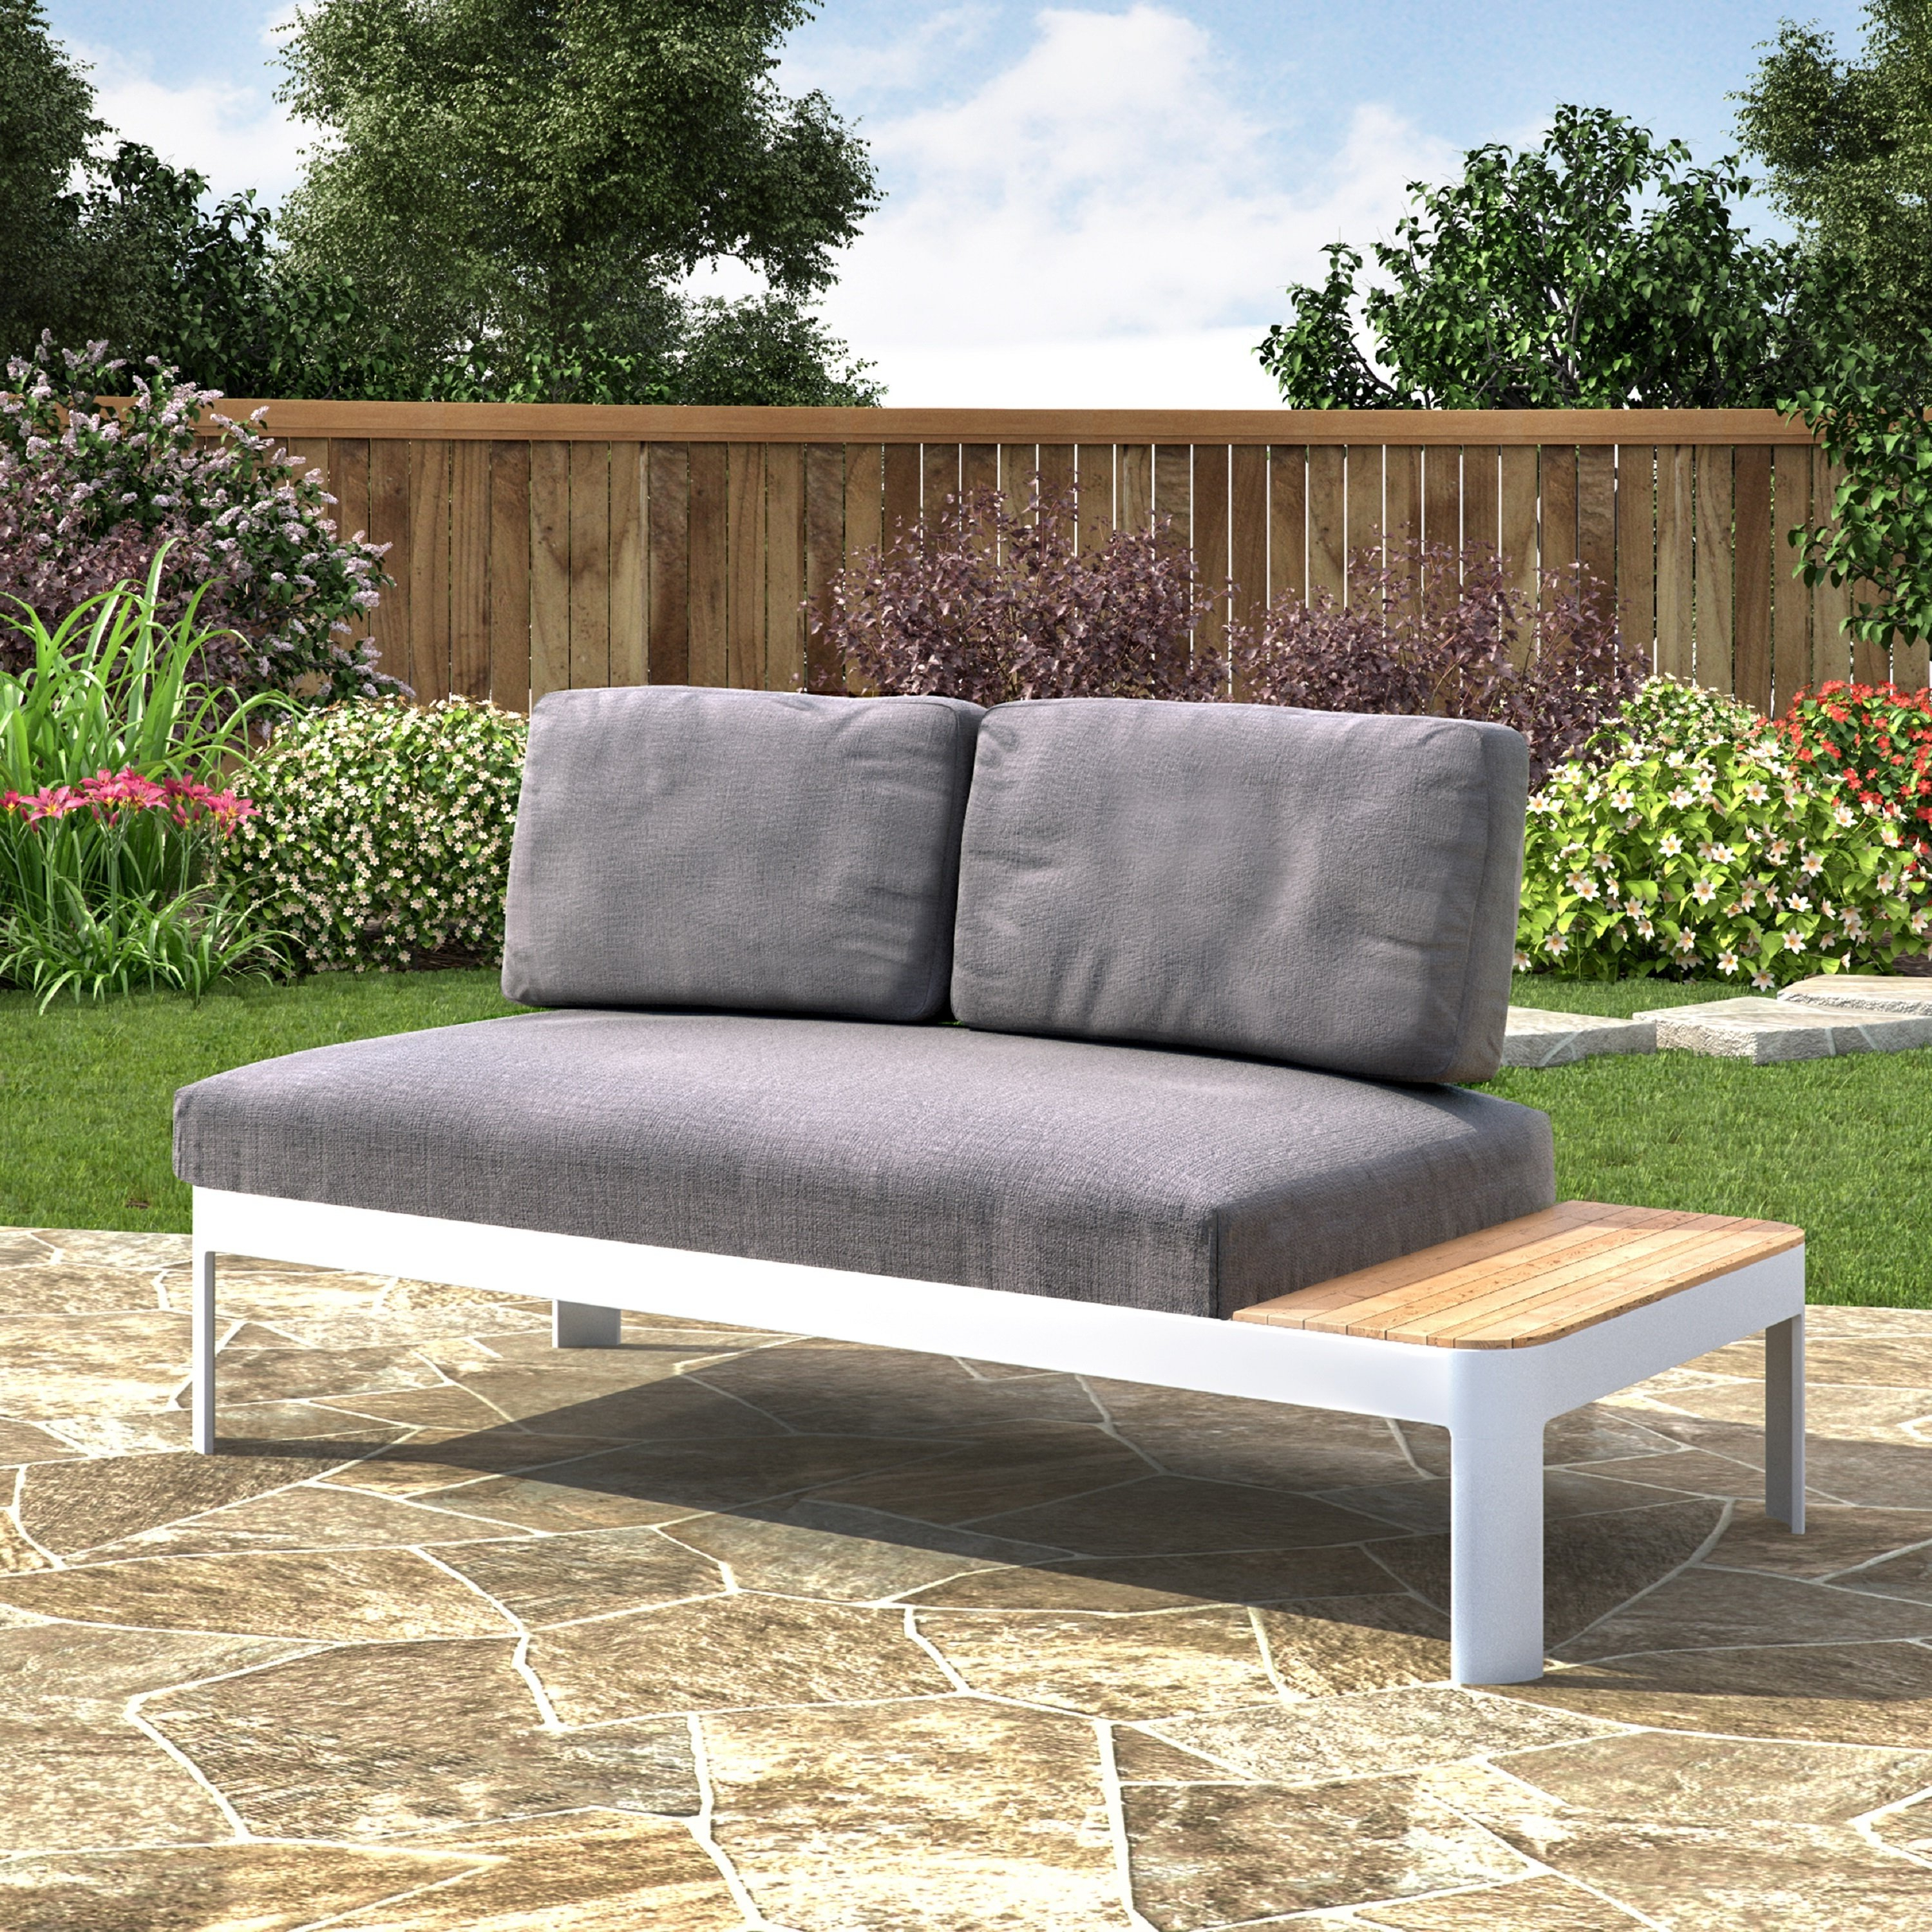 Favorite Harper Down Oversized Sofa Chairs Intended For Shop Harper Blvd Camelia Aluminum Outdoor Convertible Lounger (View 20 of 20)